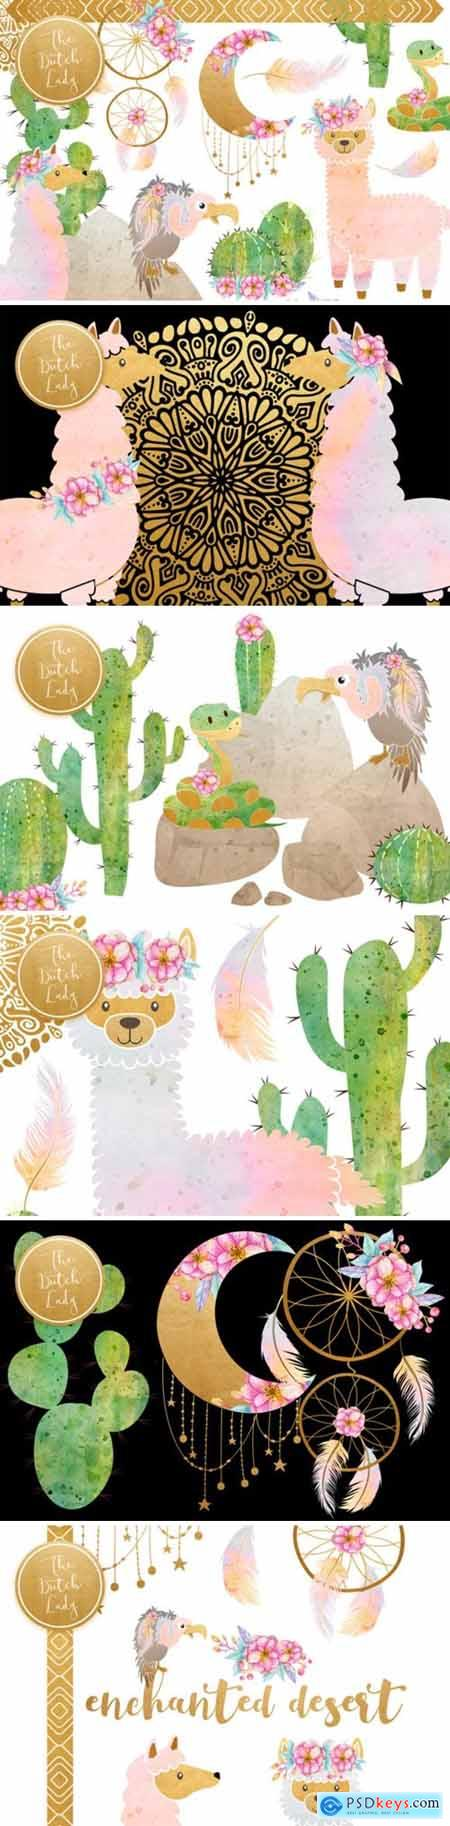 Enchanted Boho Desert Clipart Set 1598419